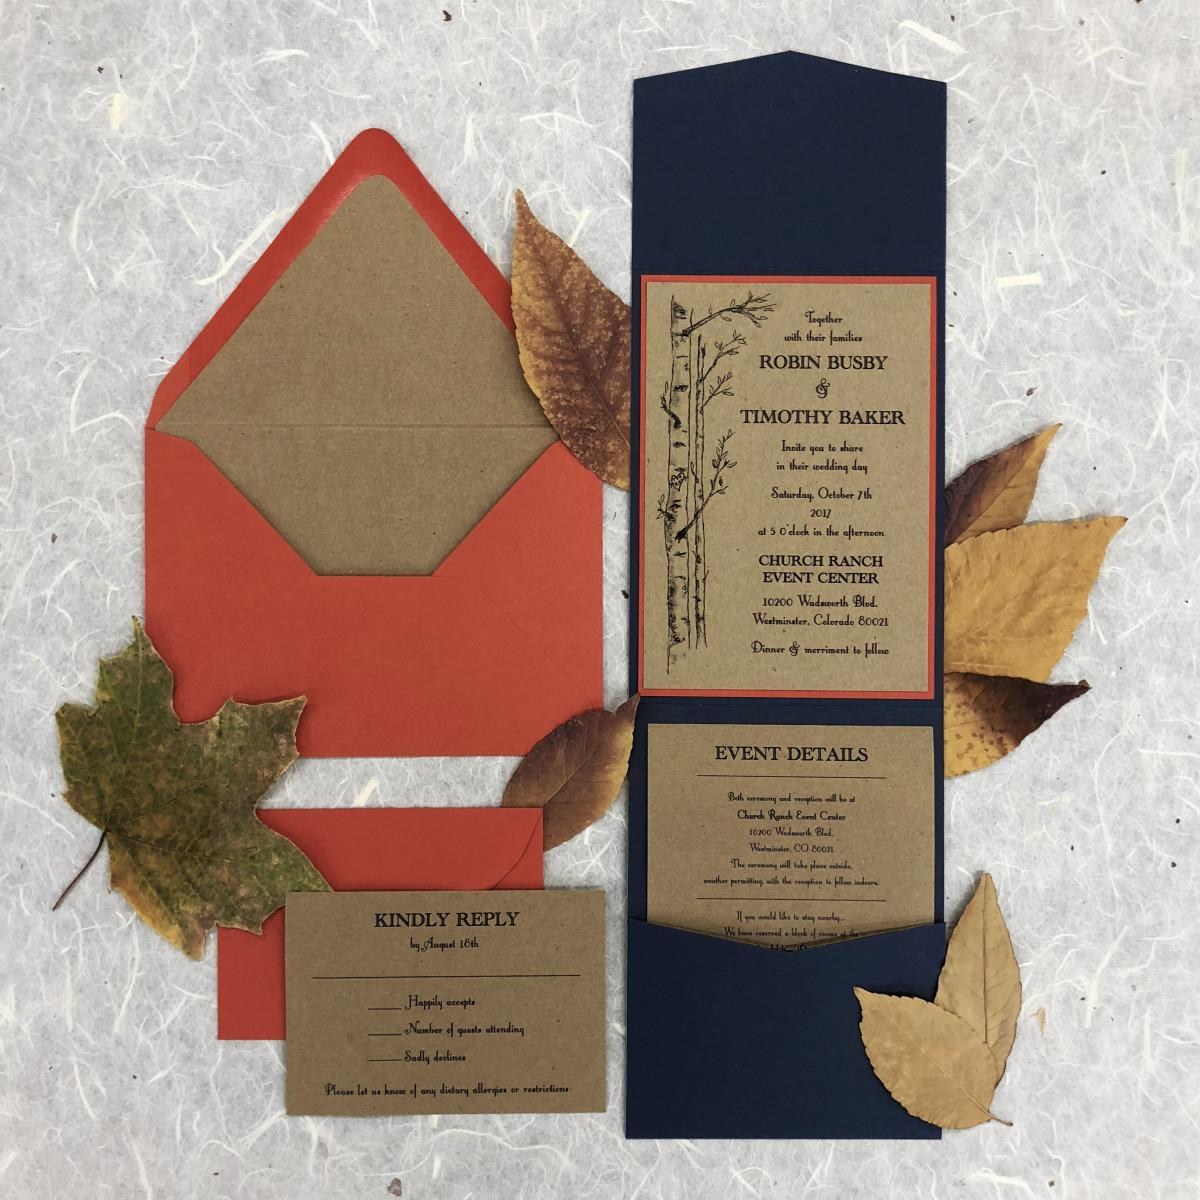 Attractive Affordable Fall Wedding Invitations Frieze - Invitations ...